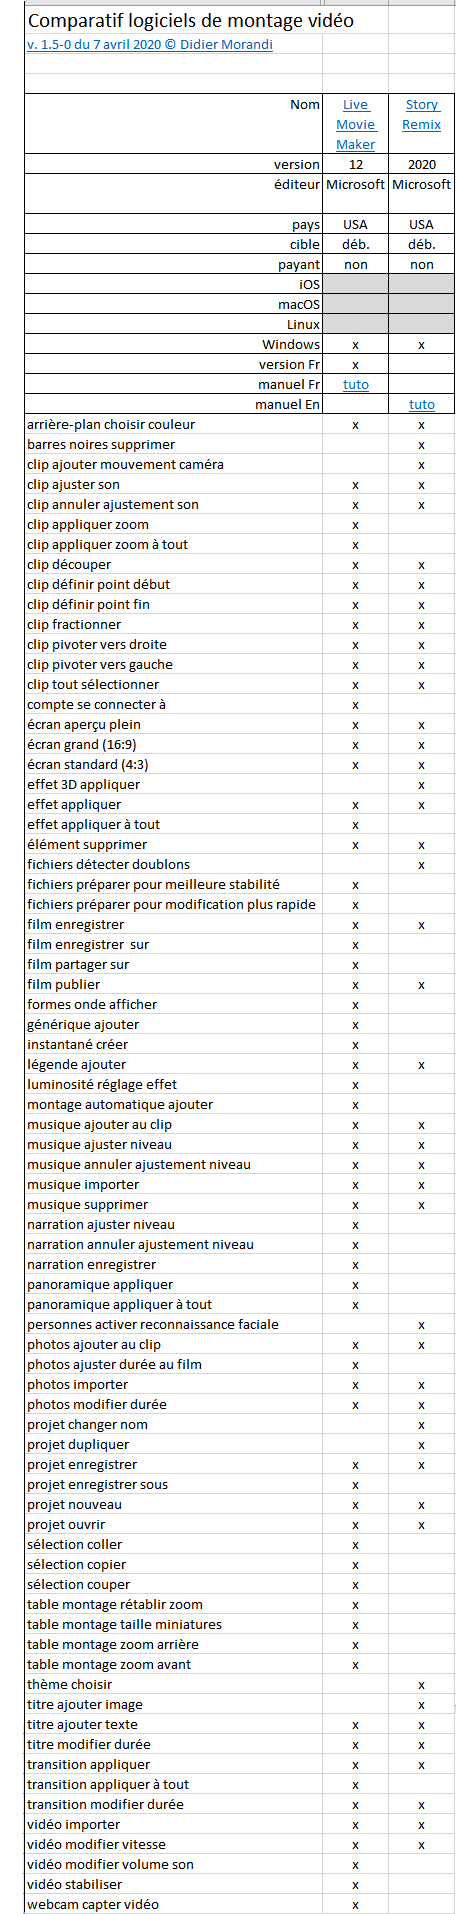 liste3.png